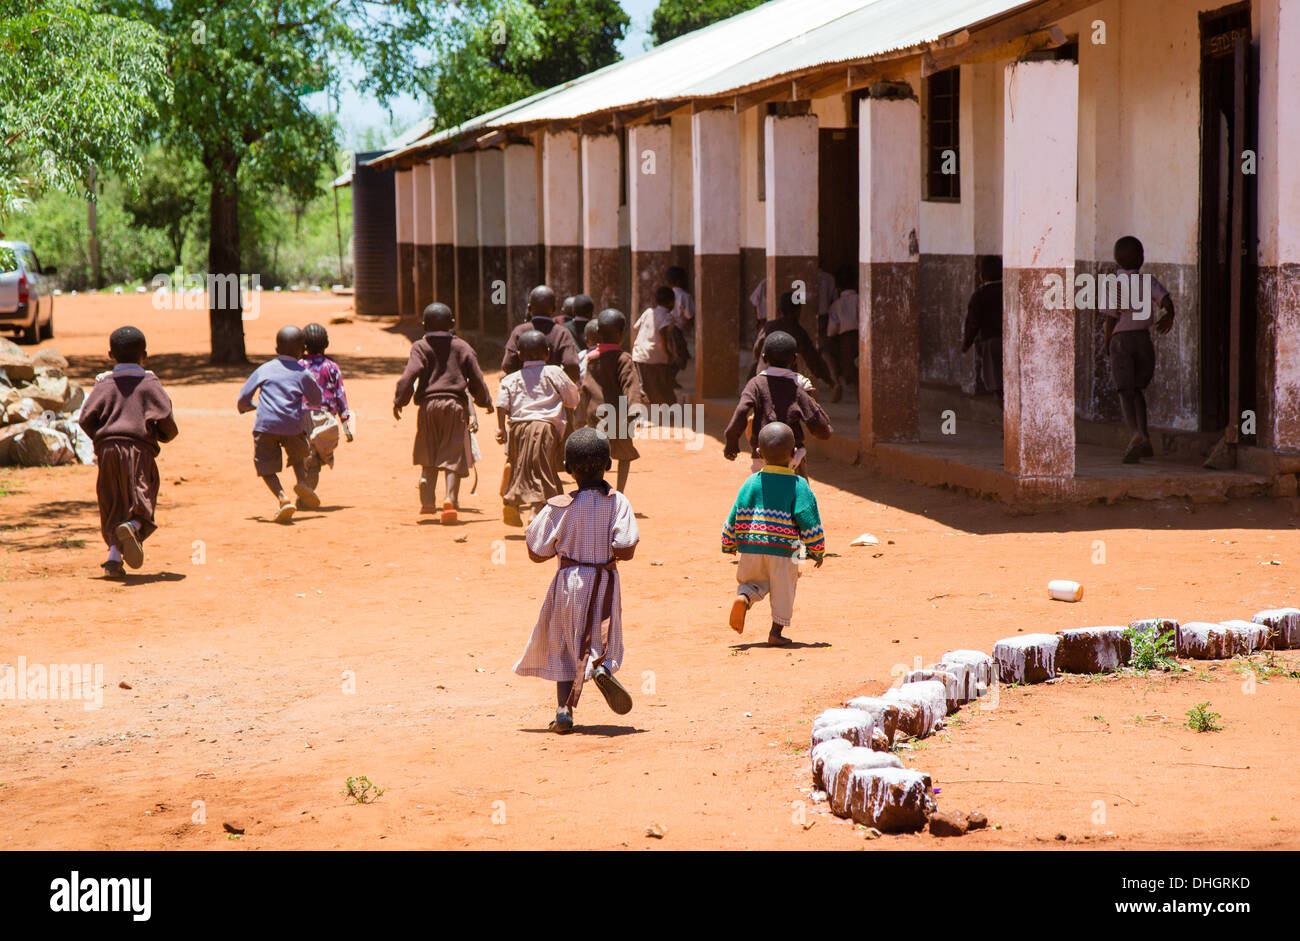 primary school children running to classrooms in a school near Voi in Southern Kenya - Stock Image